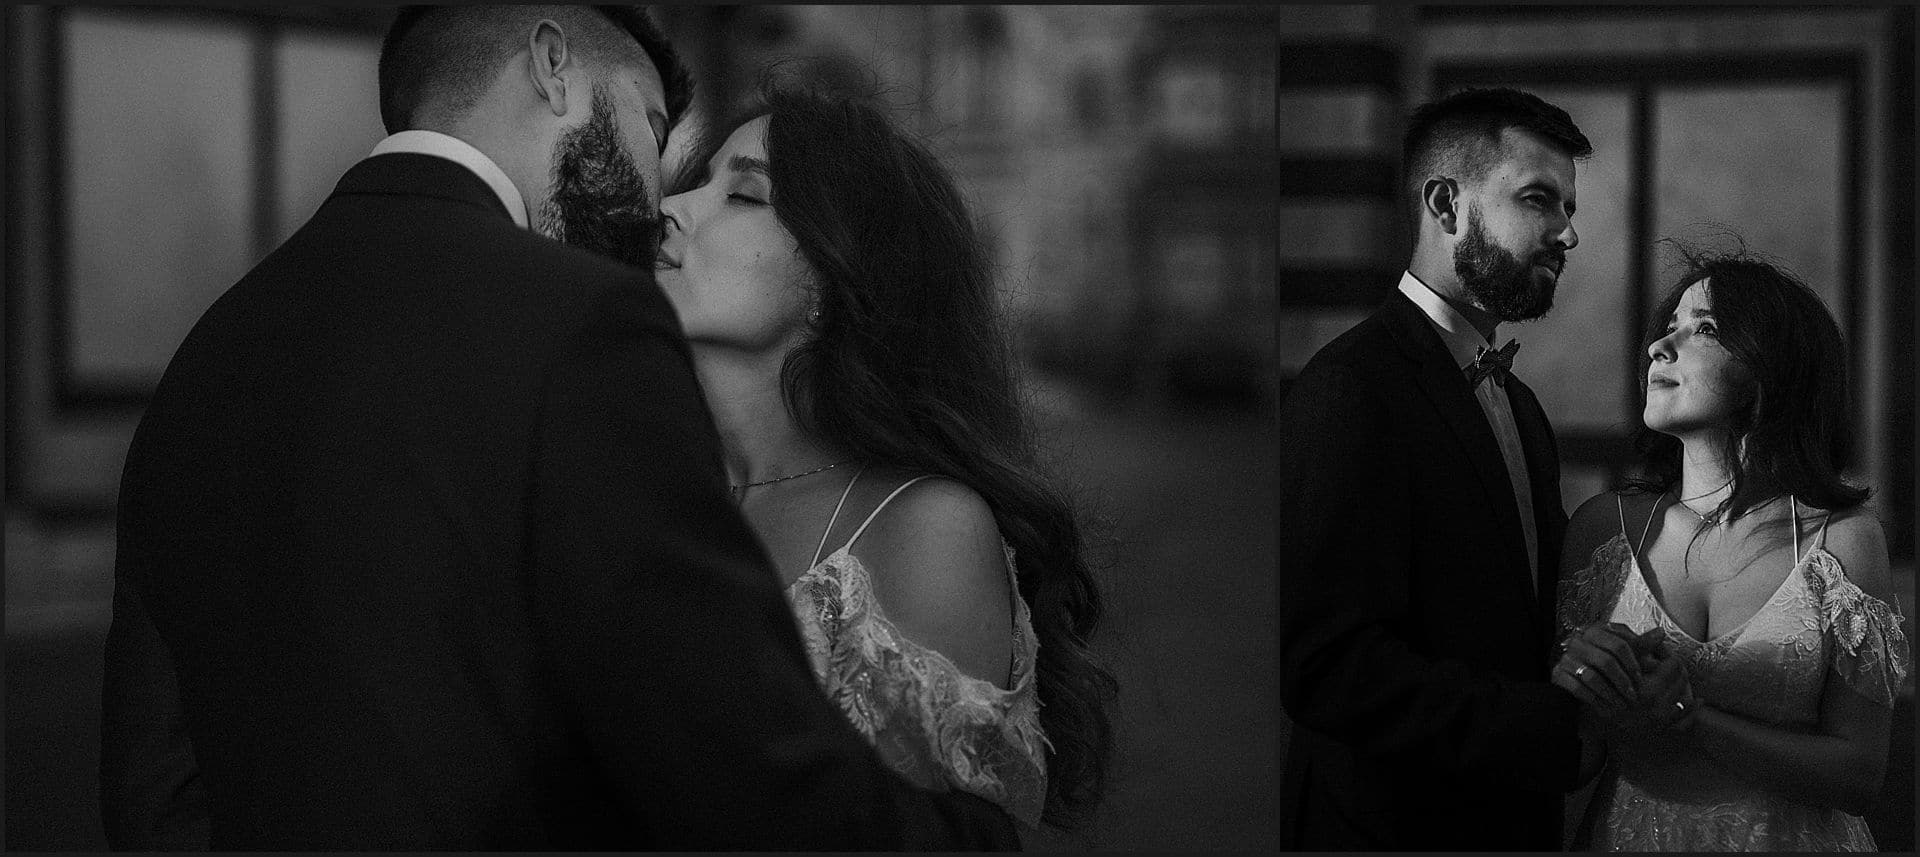 kiss, bride and groom, intimate portrait, wedding, elopement, tuscany, black and white